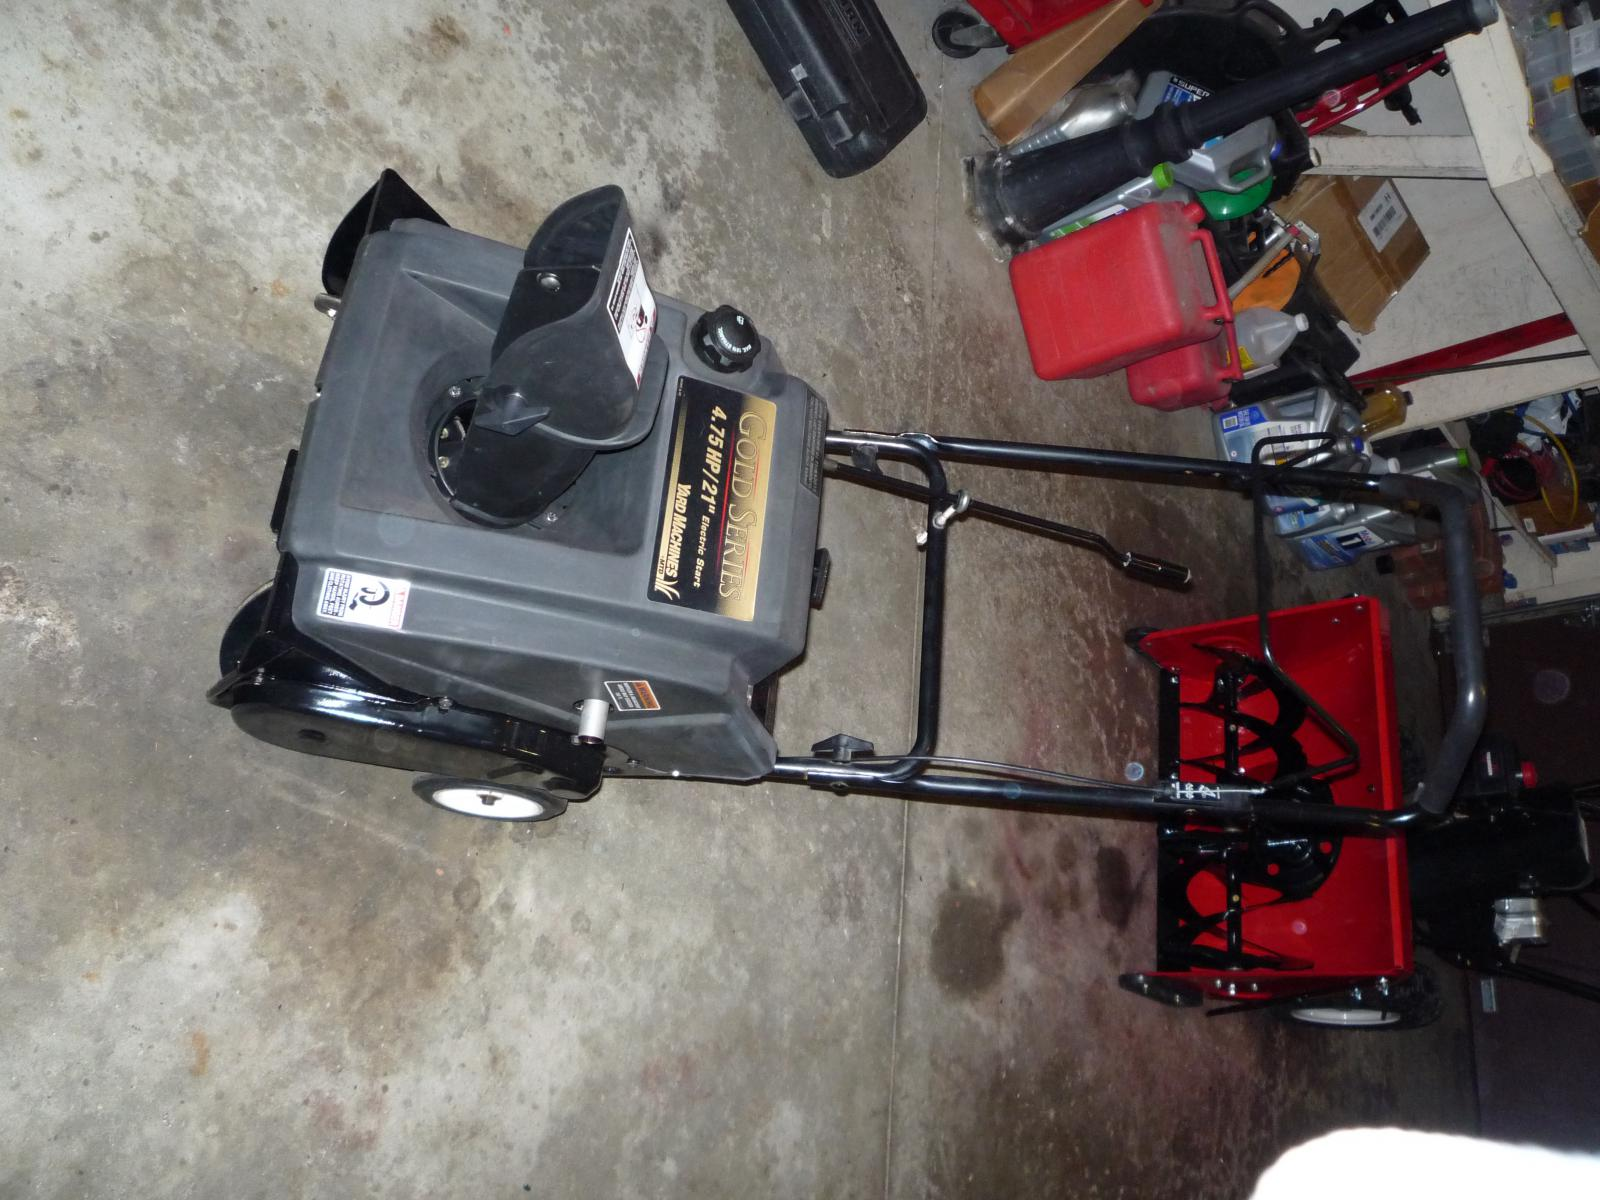 1999 vintage snowblower rebuilds-p1020768.jpg